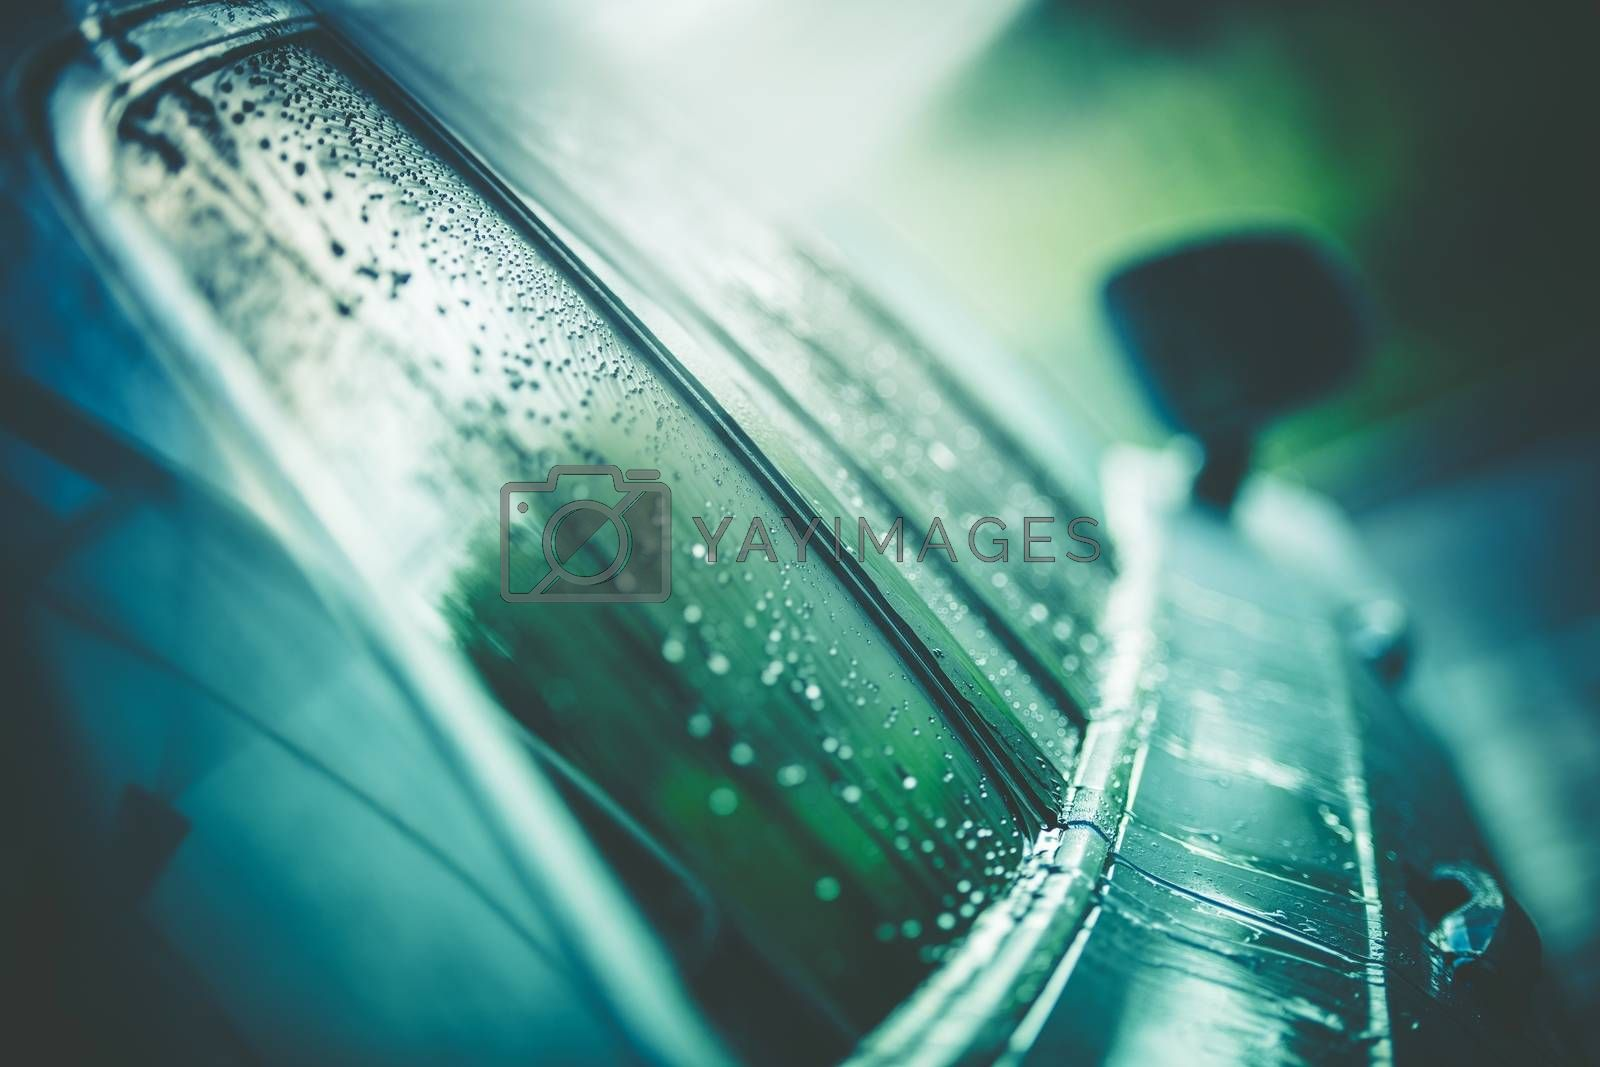 Royalty free image of Clean Car Body After Wash by welcomia